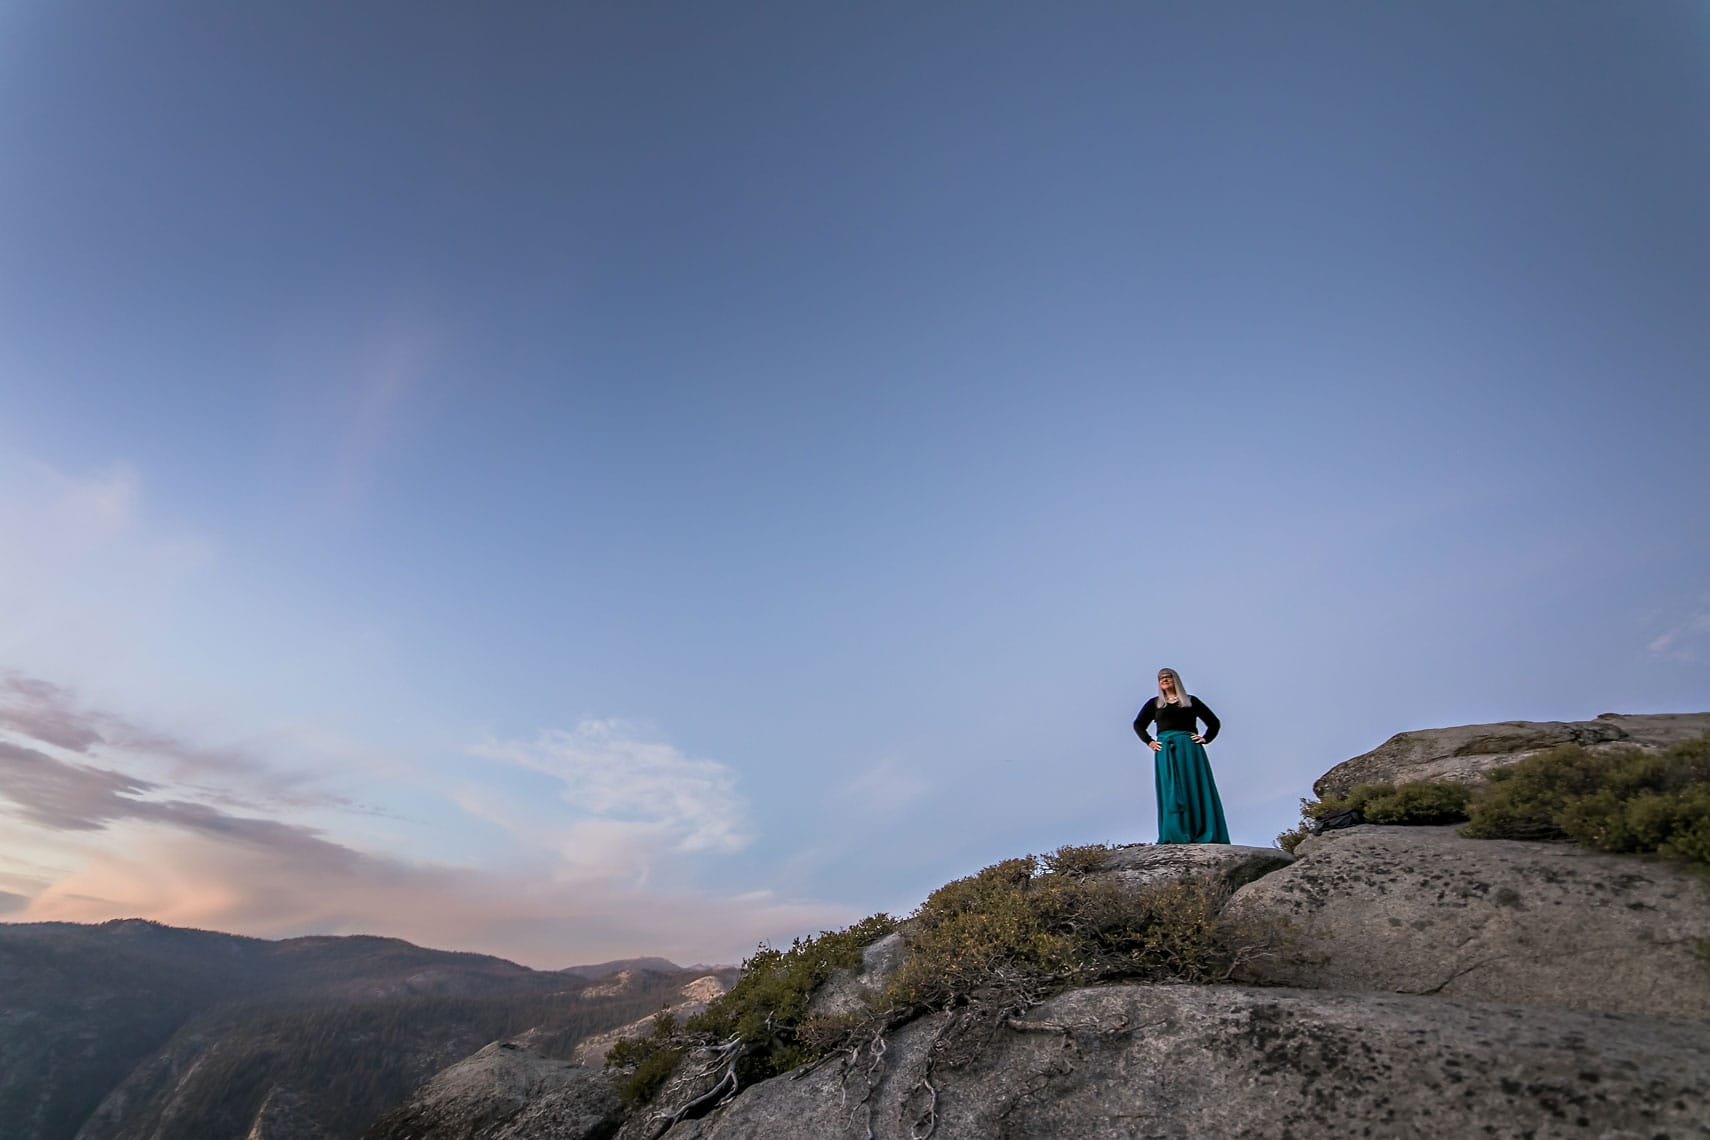 Christine Tremoulet at Glacier Point in Yosemite National Park. Photography by Shawn Reeder.